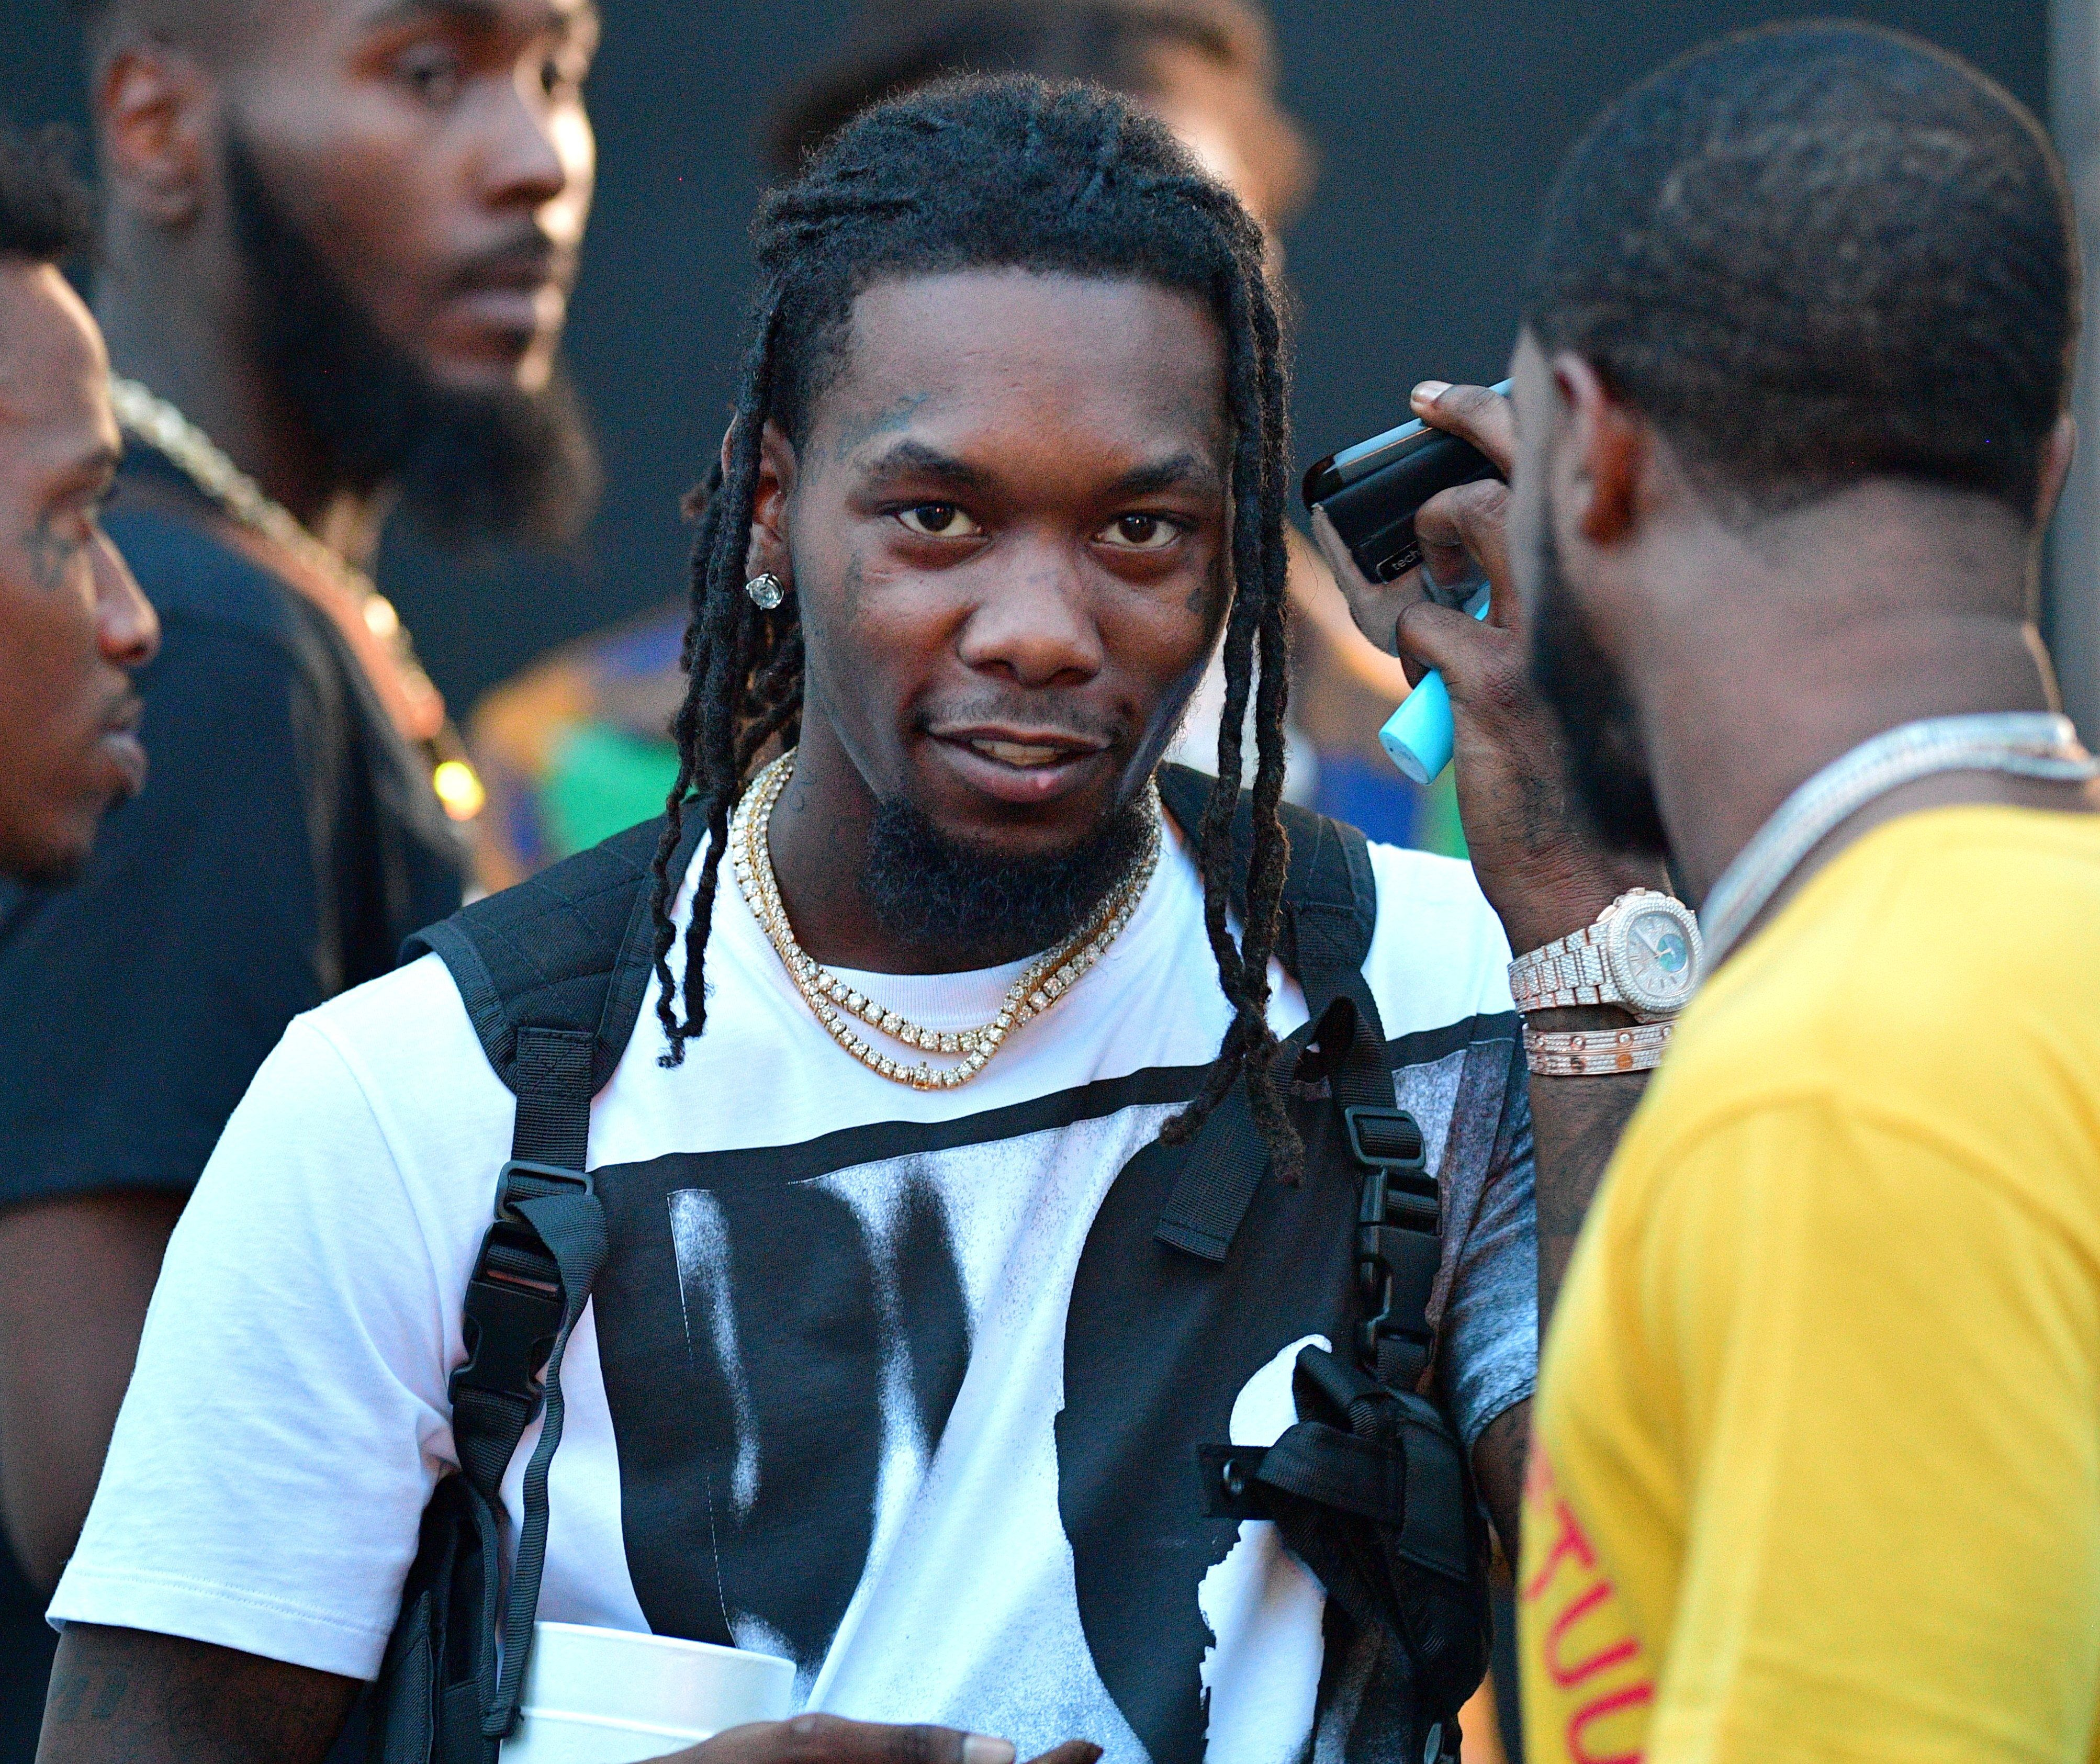 ATLANTA, GA - JUNE 16: Offset of The Group Migos attends Birthday Bash 2018 at Cellairis Amphitheatre at Lakewood on June 16, 2018 in Atlanta, Georgia.(photo by Prince Williams/Wireimage)